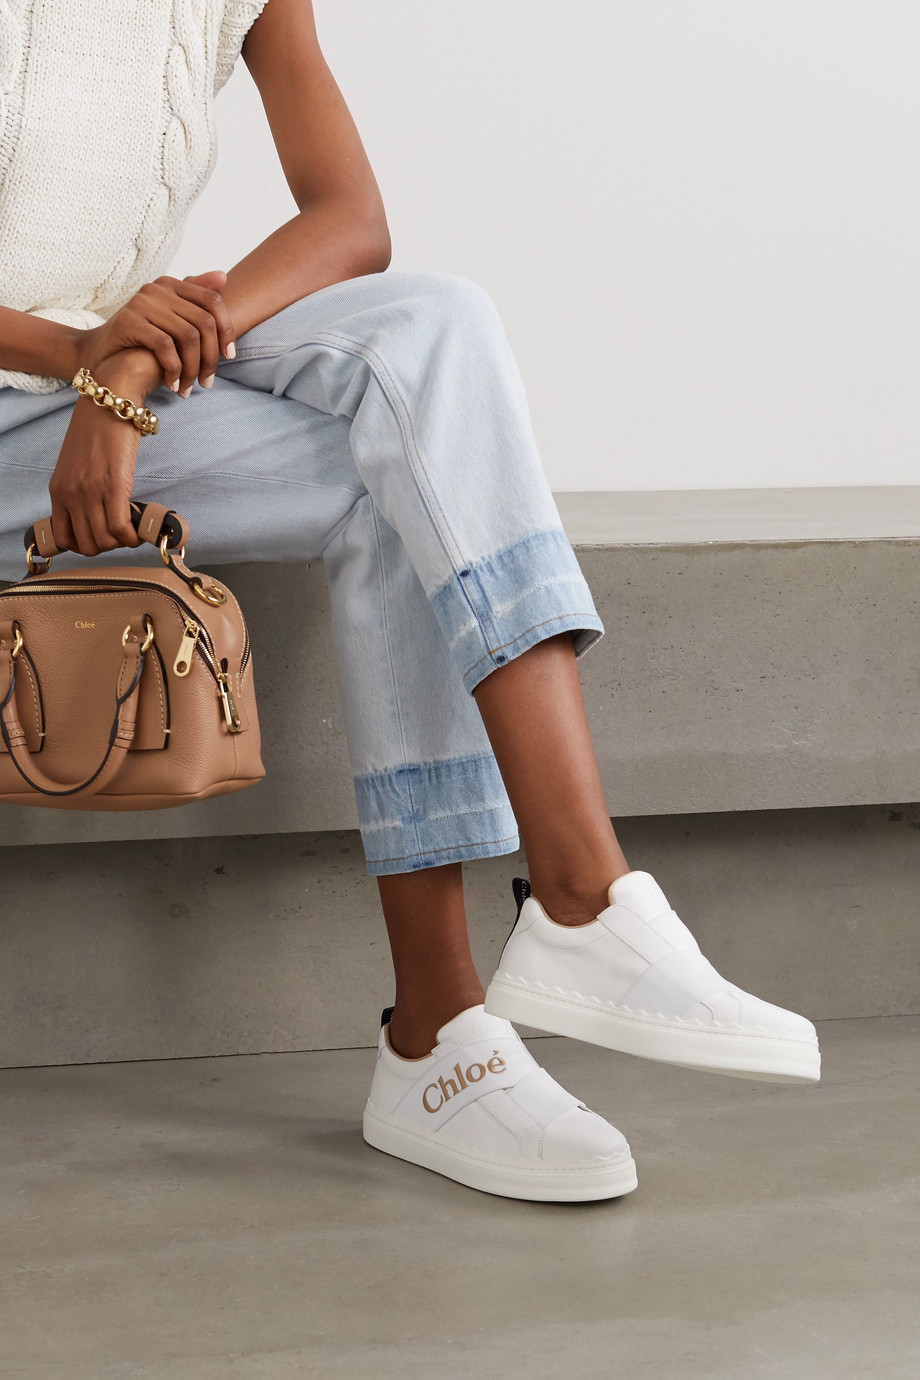 Chloé Lauren logo-embroidered leather sneakers